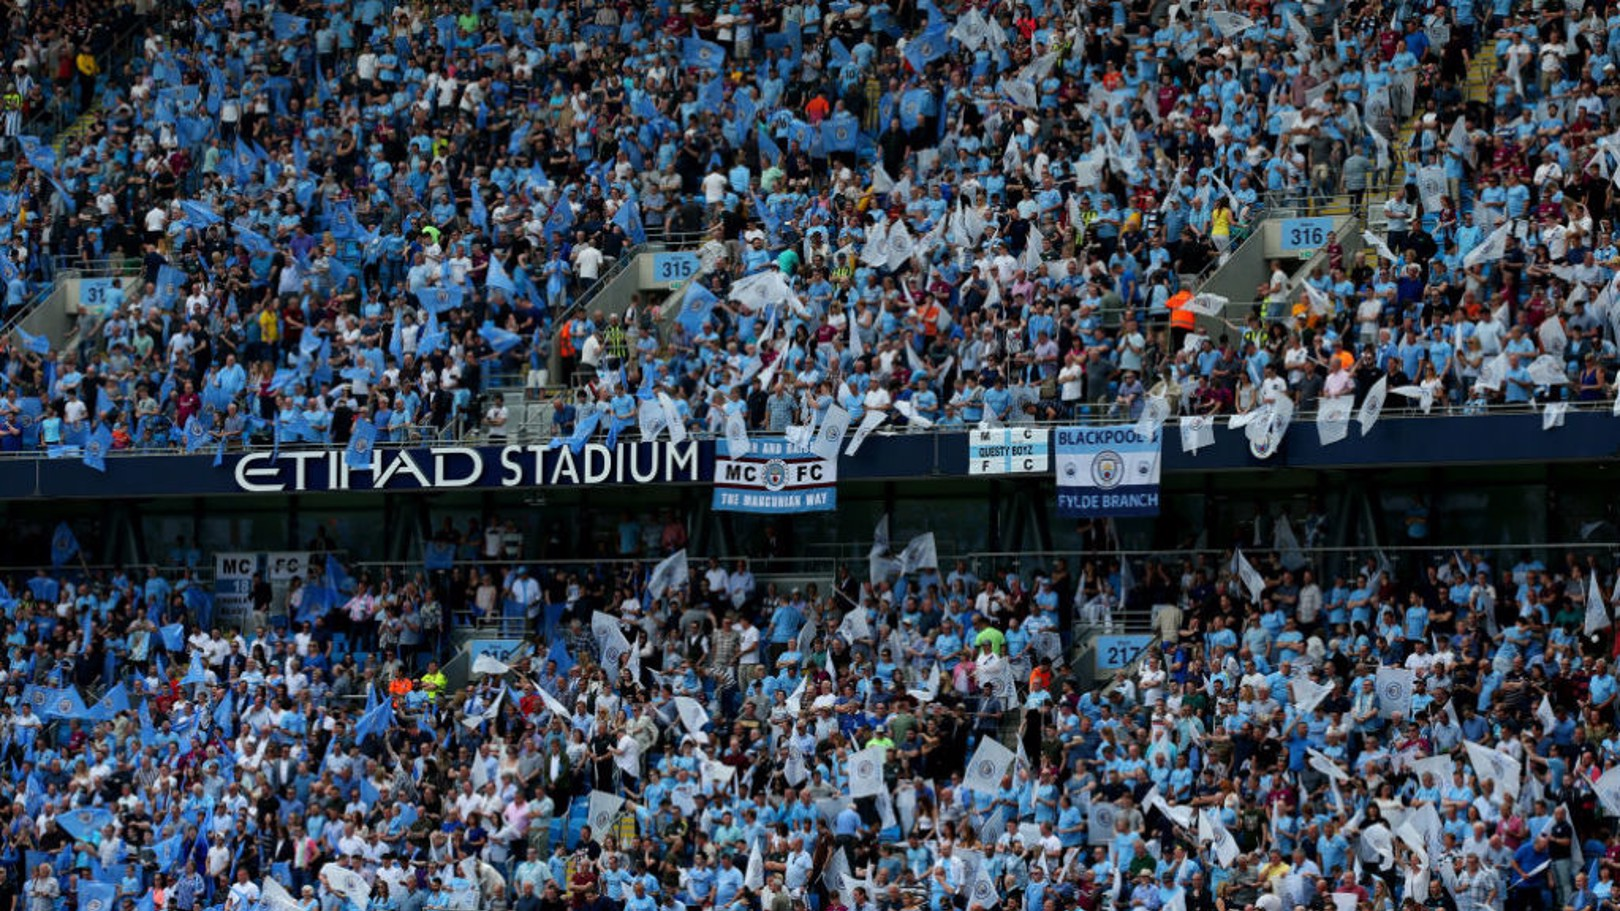 The City Ticket Exchange means that Seasoncard holders need not be out of pocket if they can't attend a game